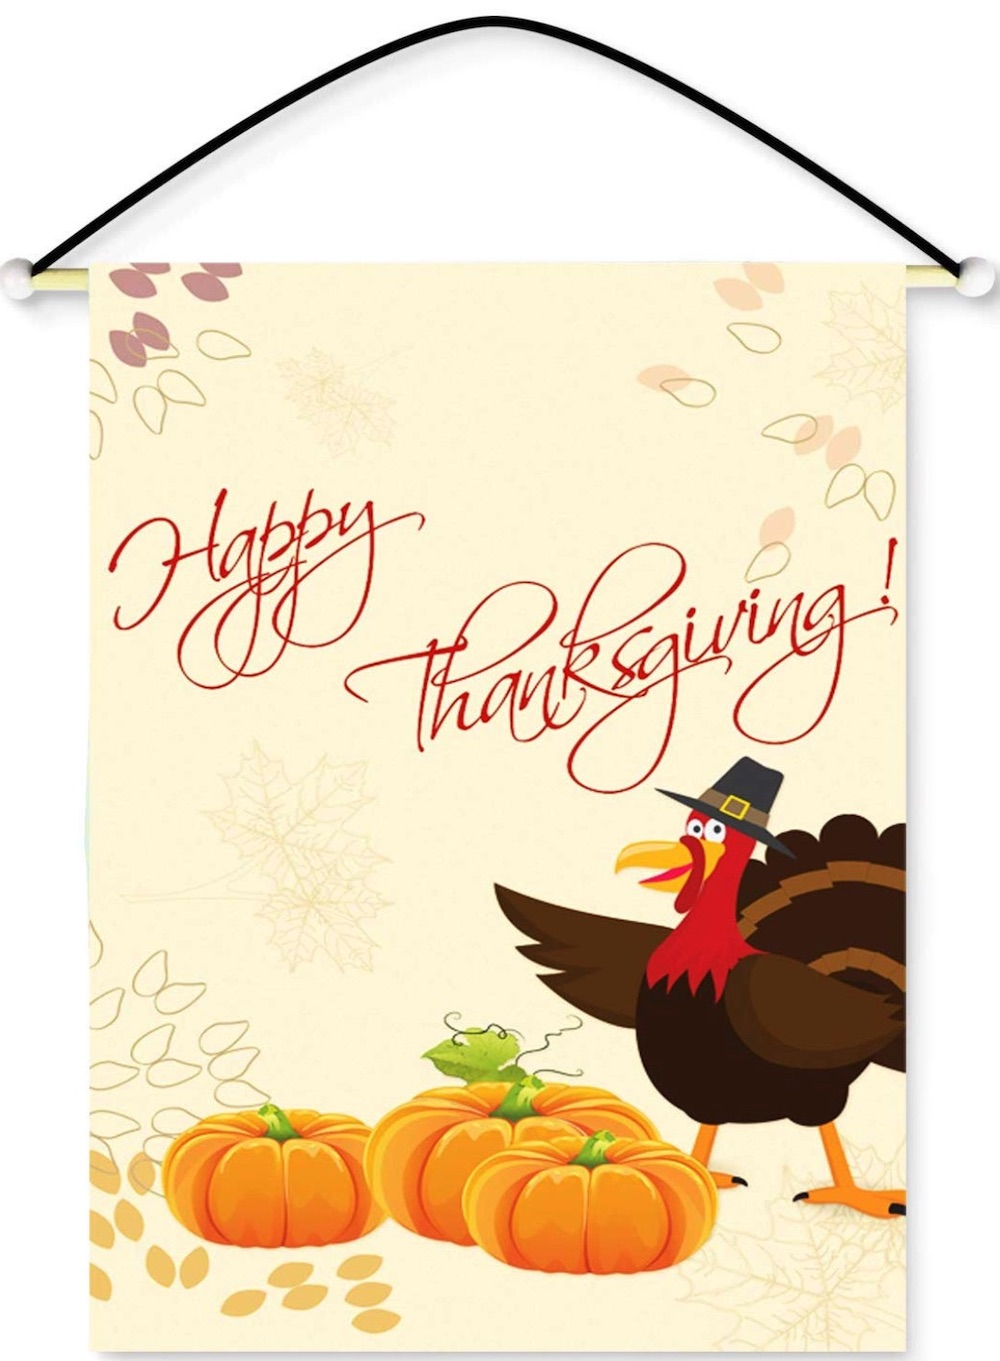 Decorations for a Festive Home Happy Thanksgiving Turkey Wall Banner #Decor #ThanksgivingDecor #AffordableDecor #AffordableFallDecor #CheapThanksgivingDecor #QuickAndEasyDecor #BudgetFriendlyDecor